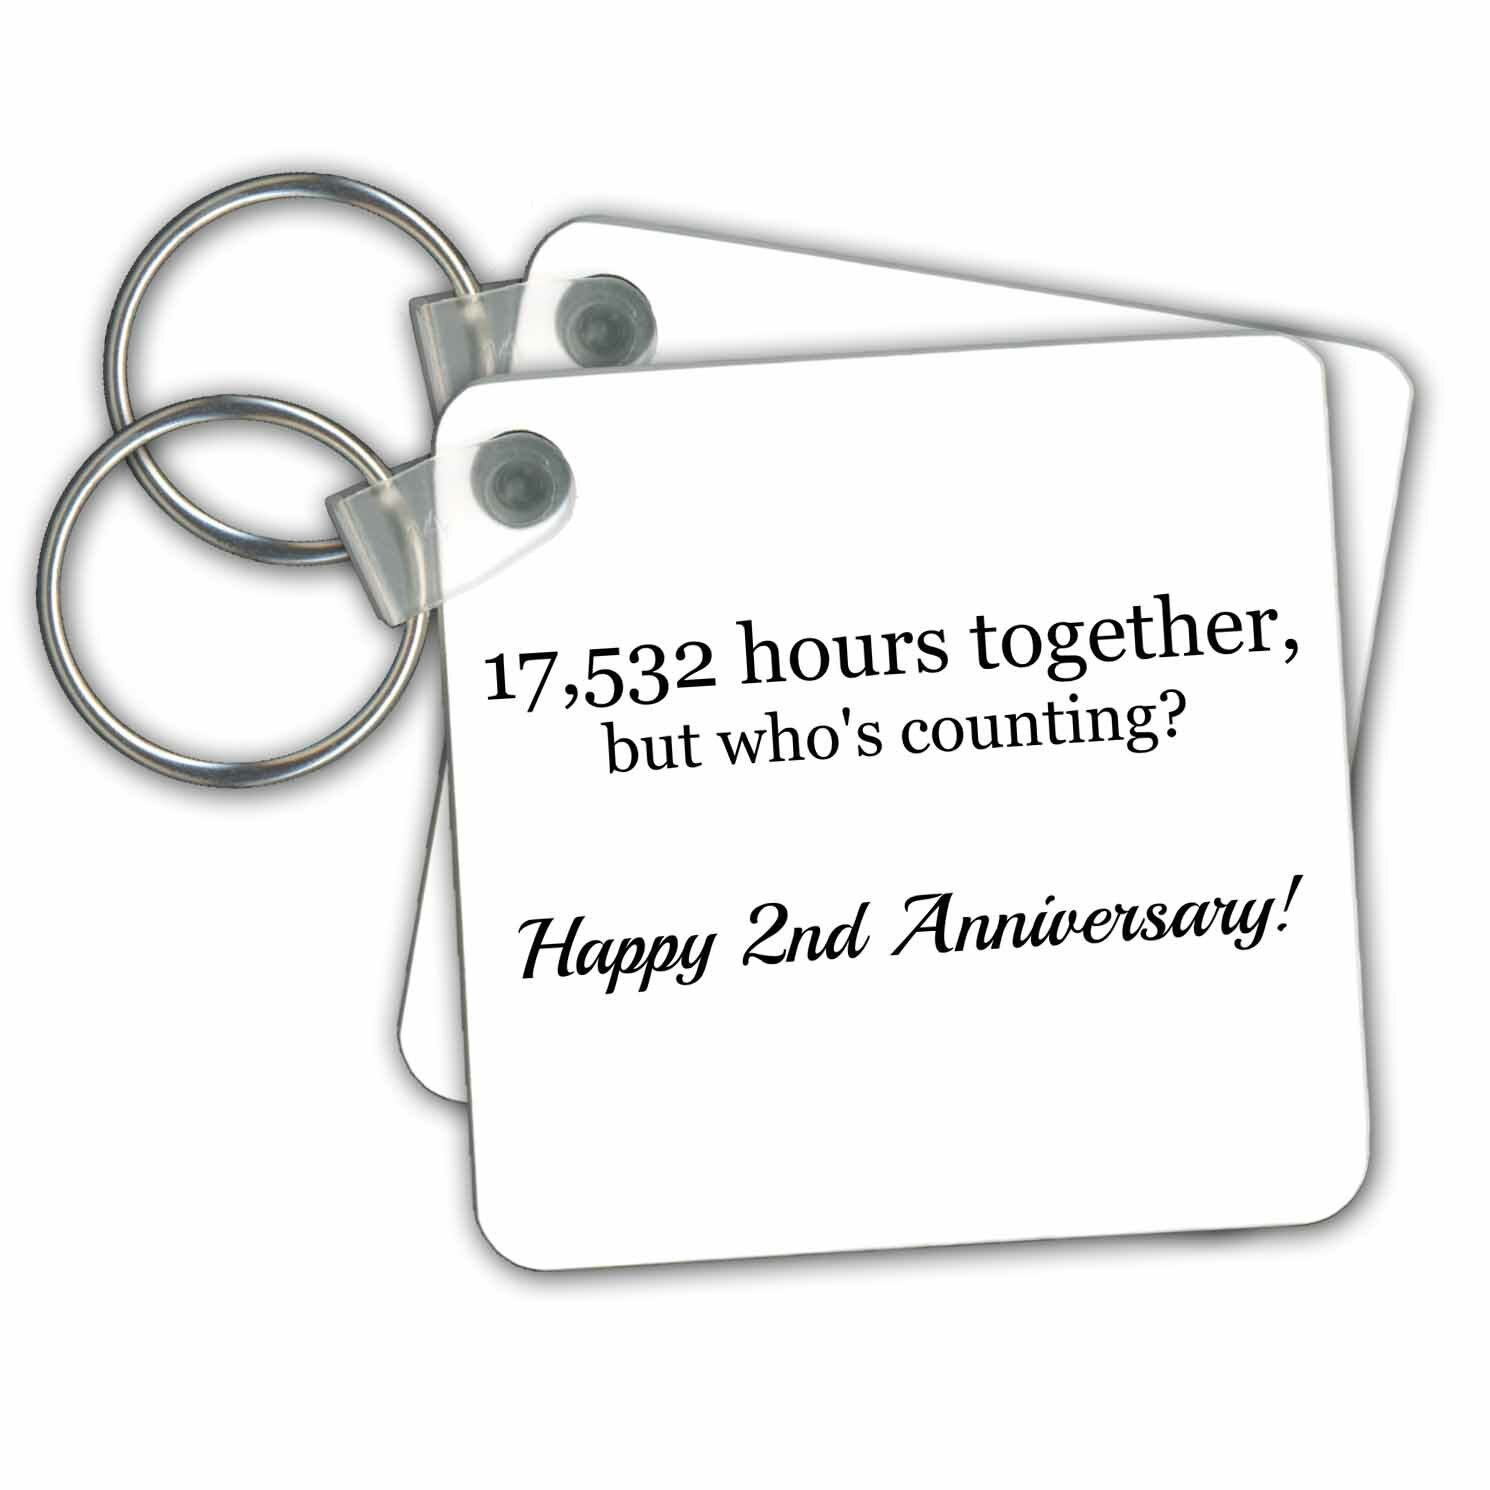 3drose Happy 2nd Anniversary 17532 Hours Together Key Chain Wayfair